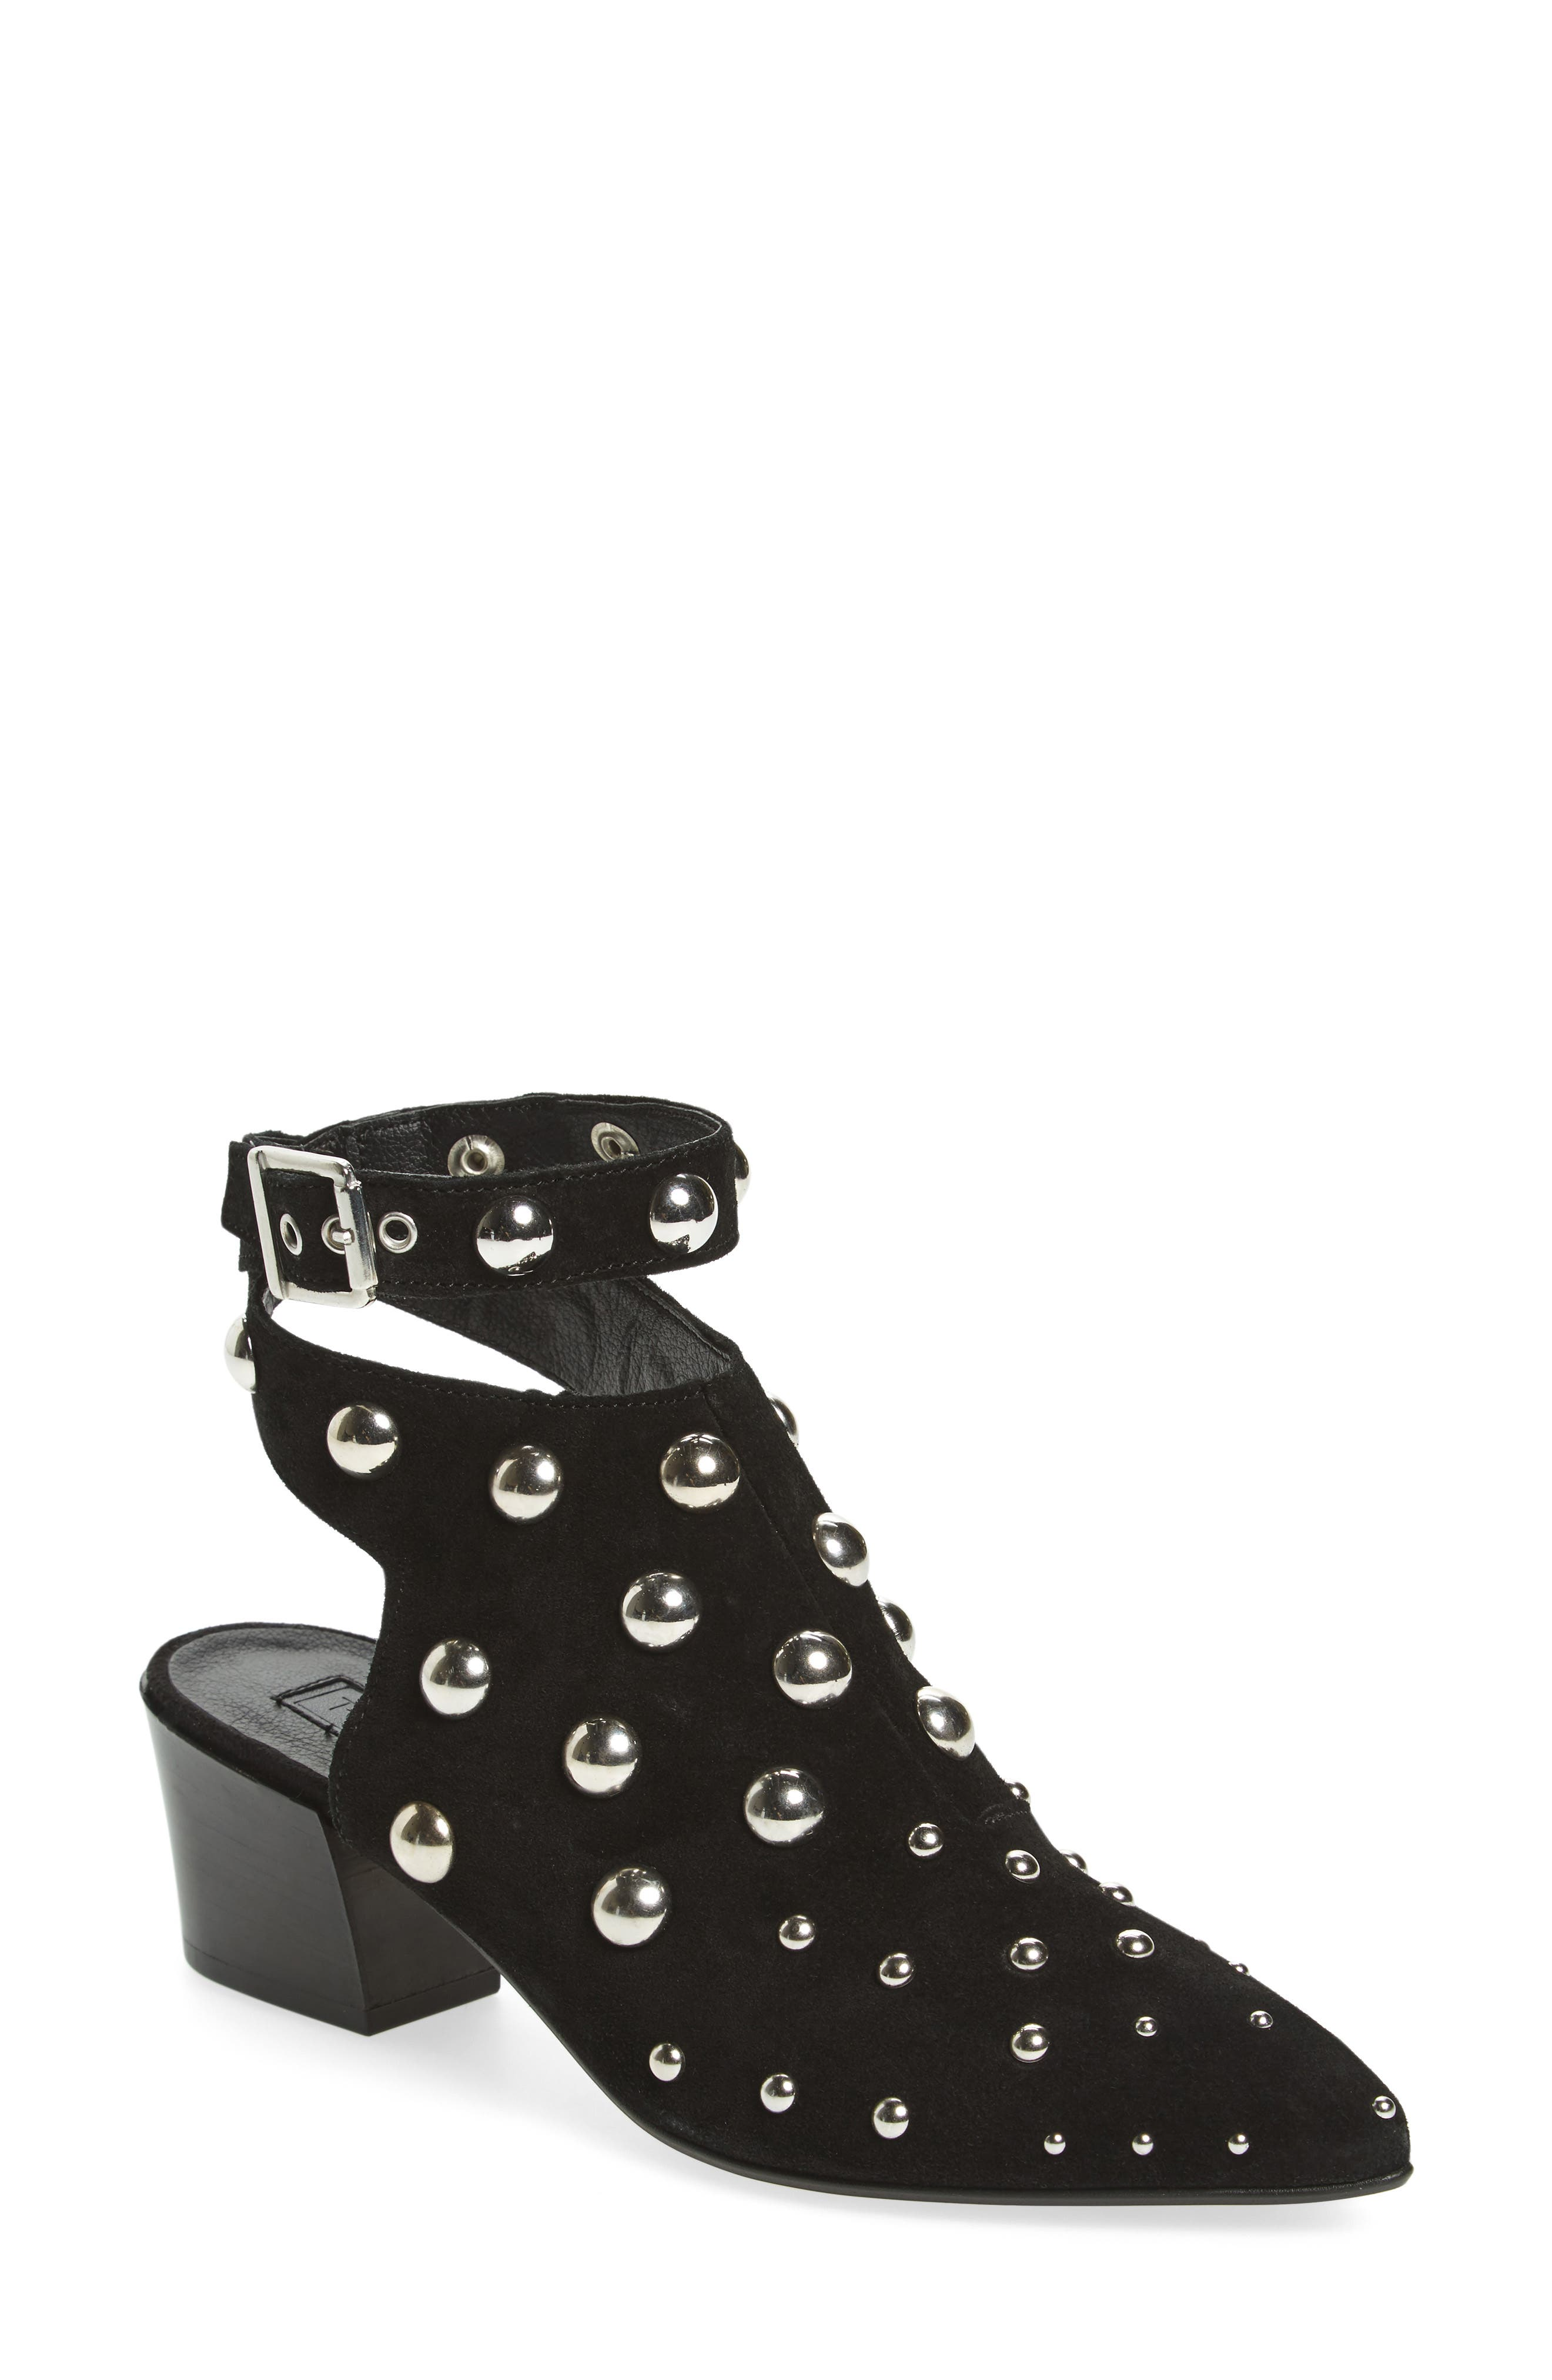 Madness Studded Wraparound Bootie,                             Main thumbnail 1, color,                             001